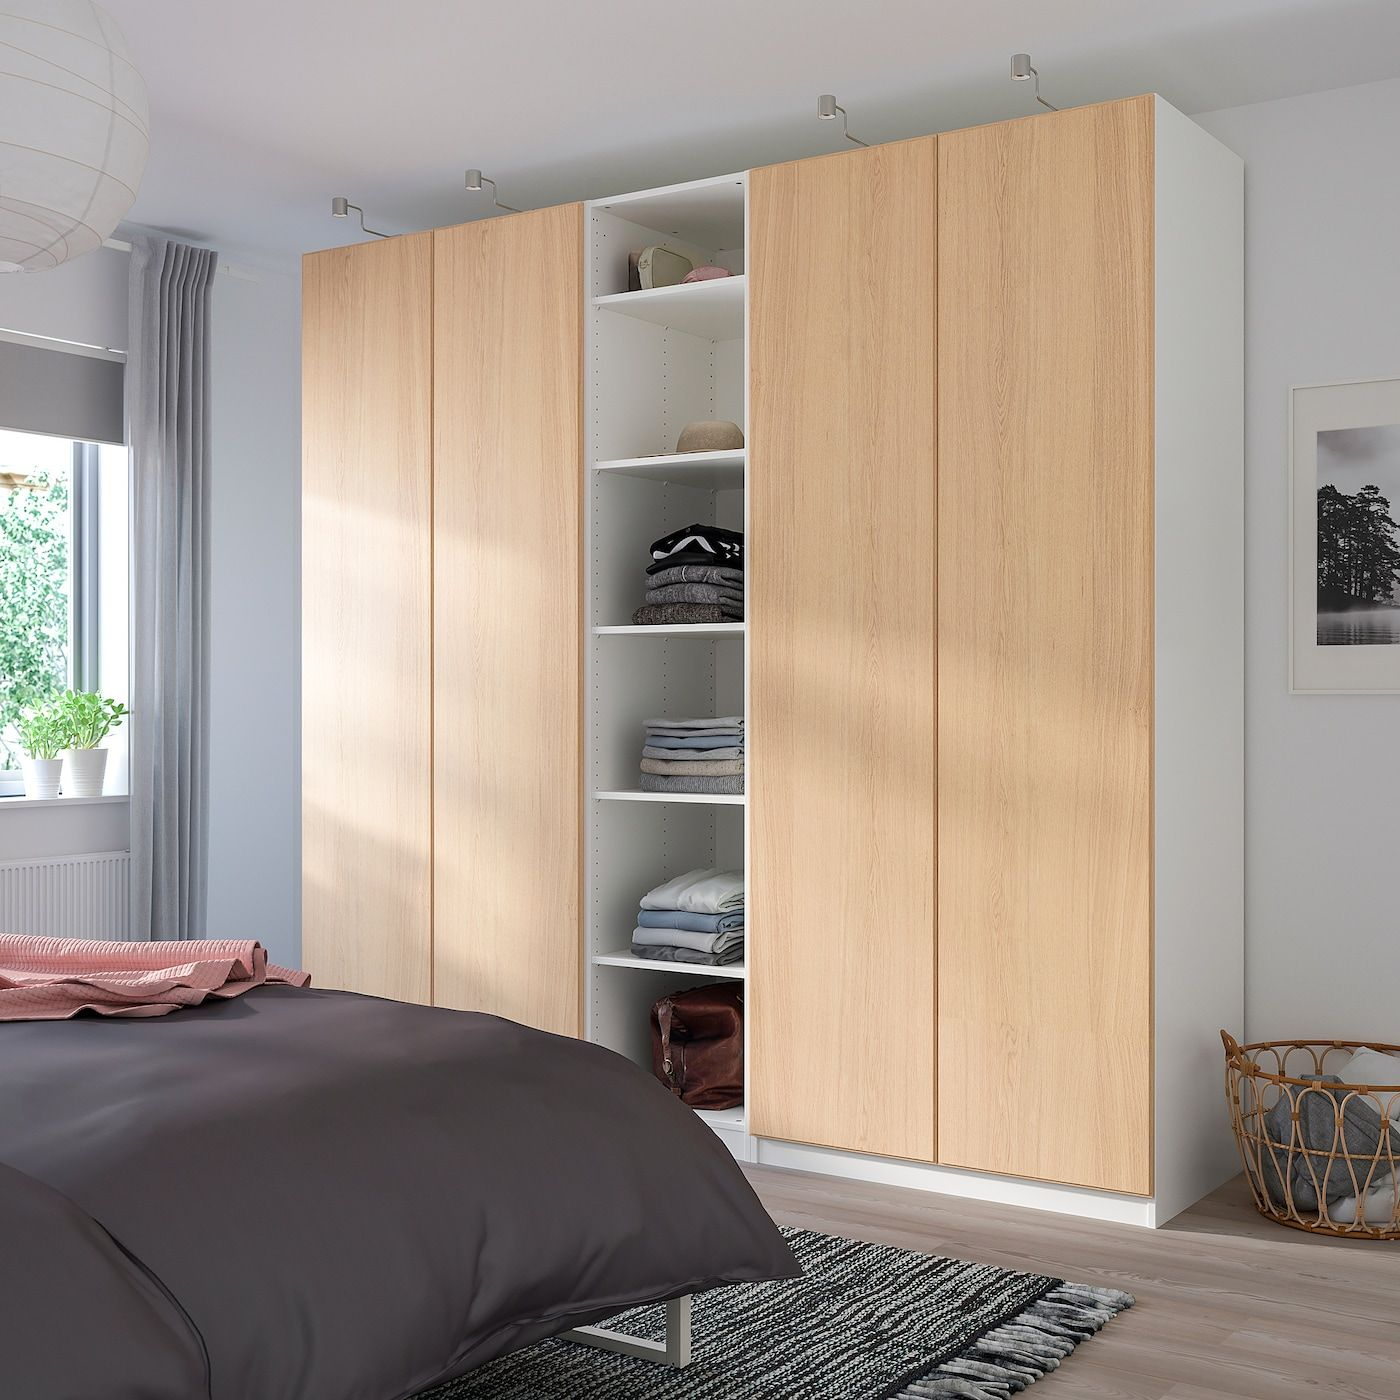 Ikea Pax Wardrobe White Repvåg White Stained Oak Veneer Ikea Pax Pax Wardrobe Ikea